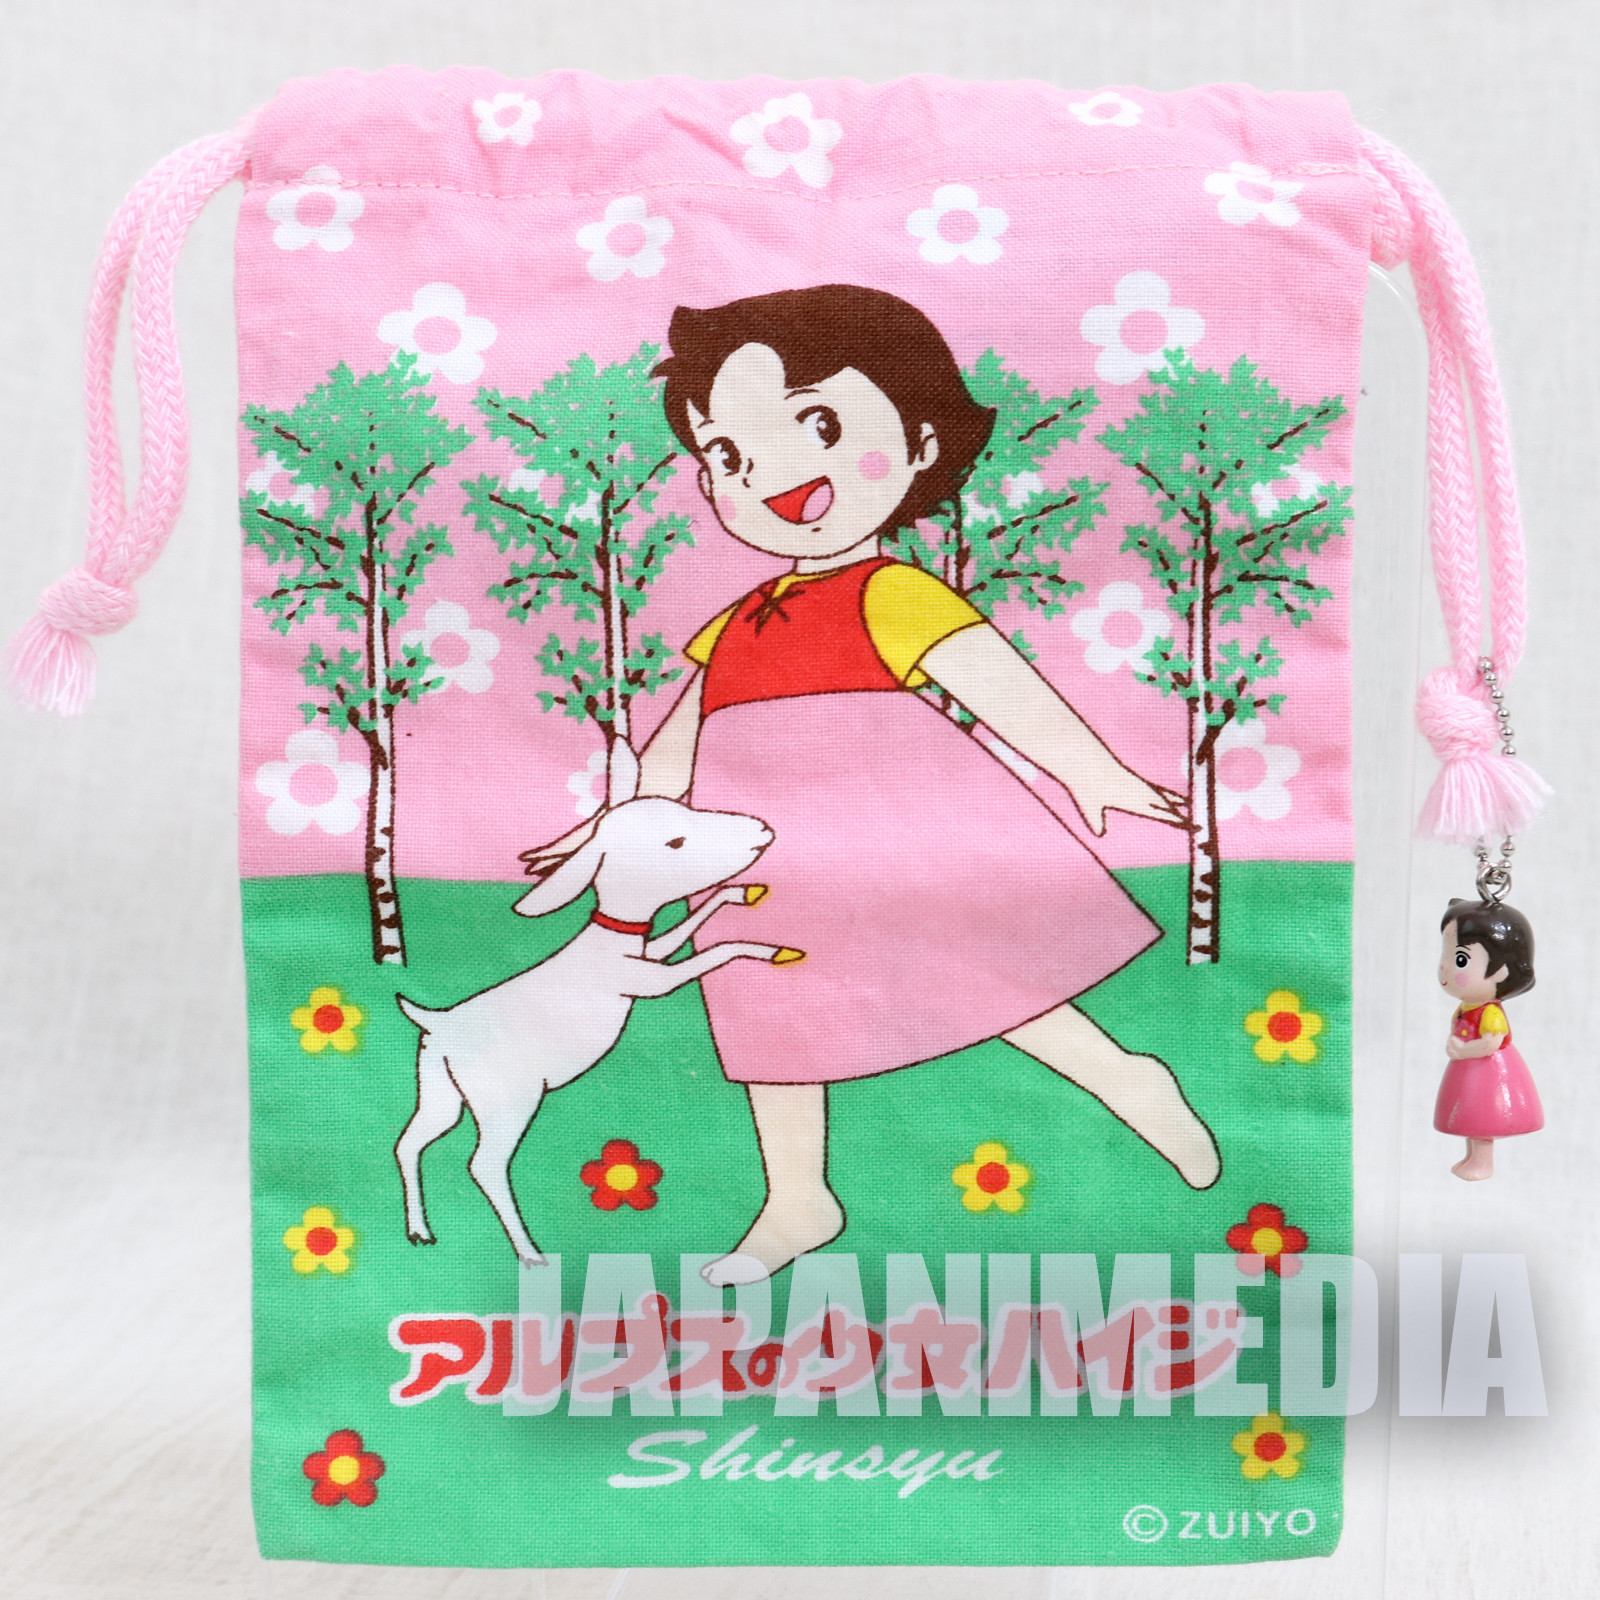 Heidi Girl of the Alps Small Drawstring Bag JAPAN ANIME